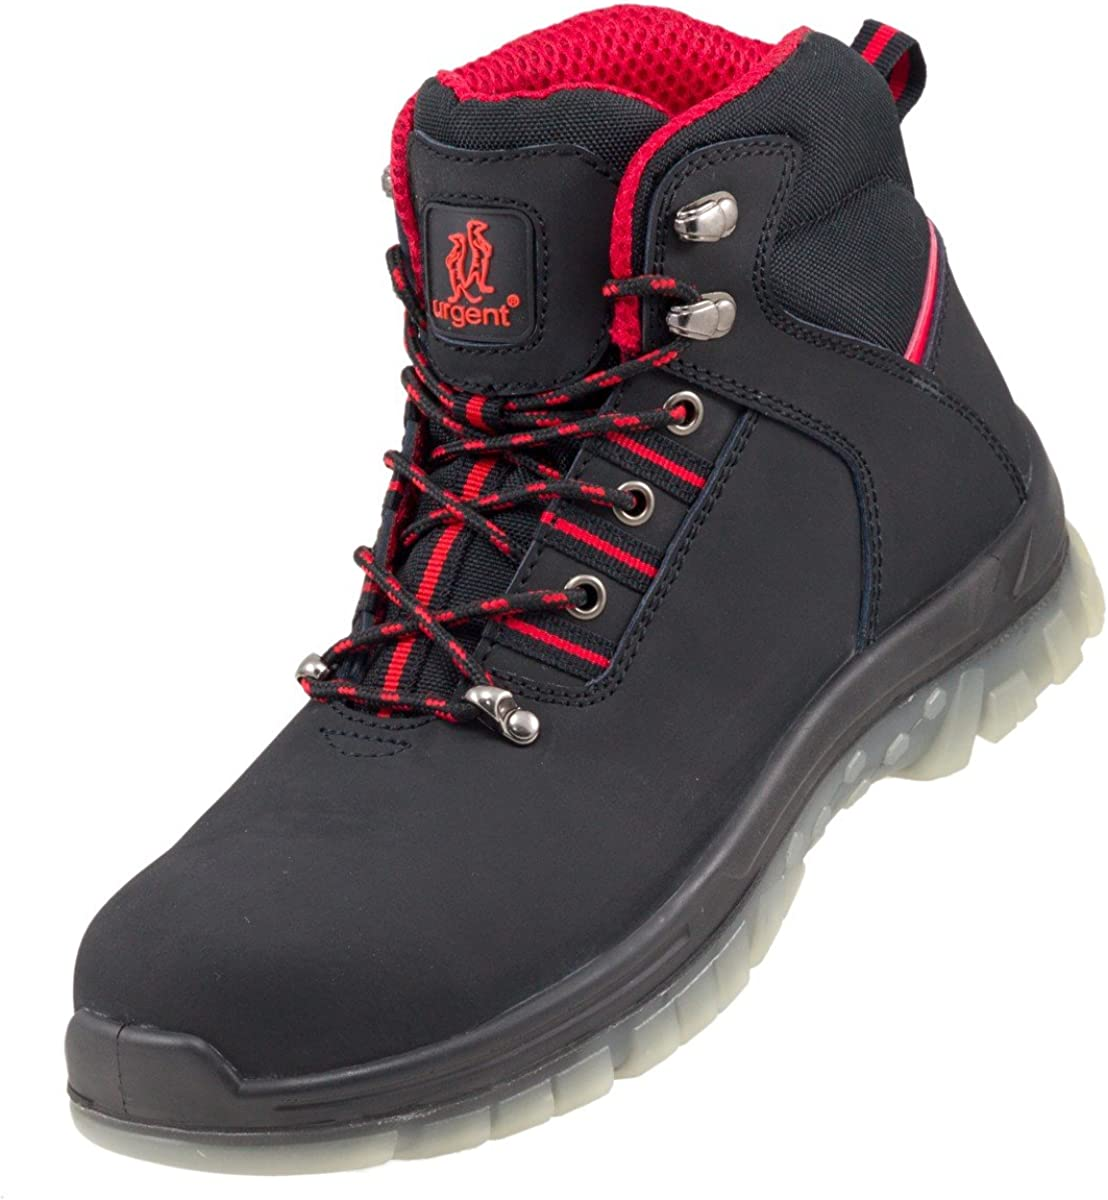 Urgent Leightweight Leather Men s Boot Safety Work Boot with Steel Toe Cap 103 SB